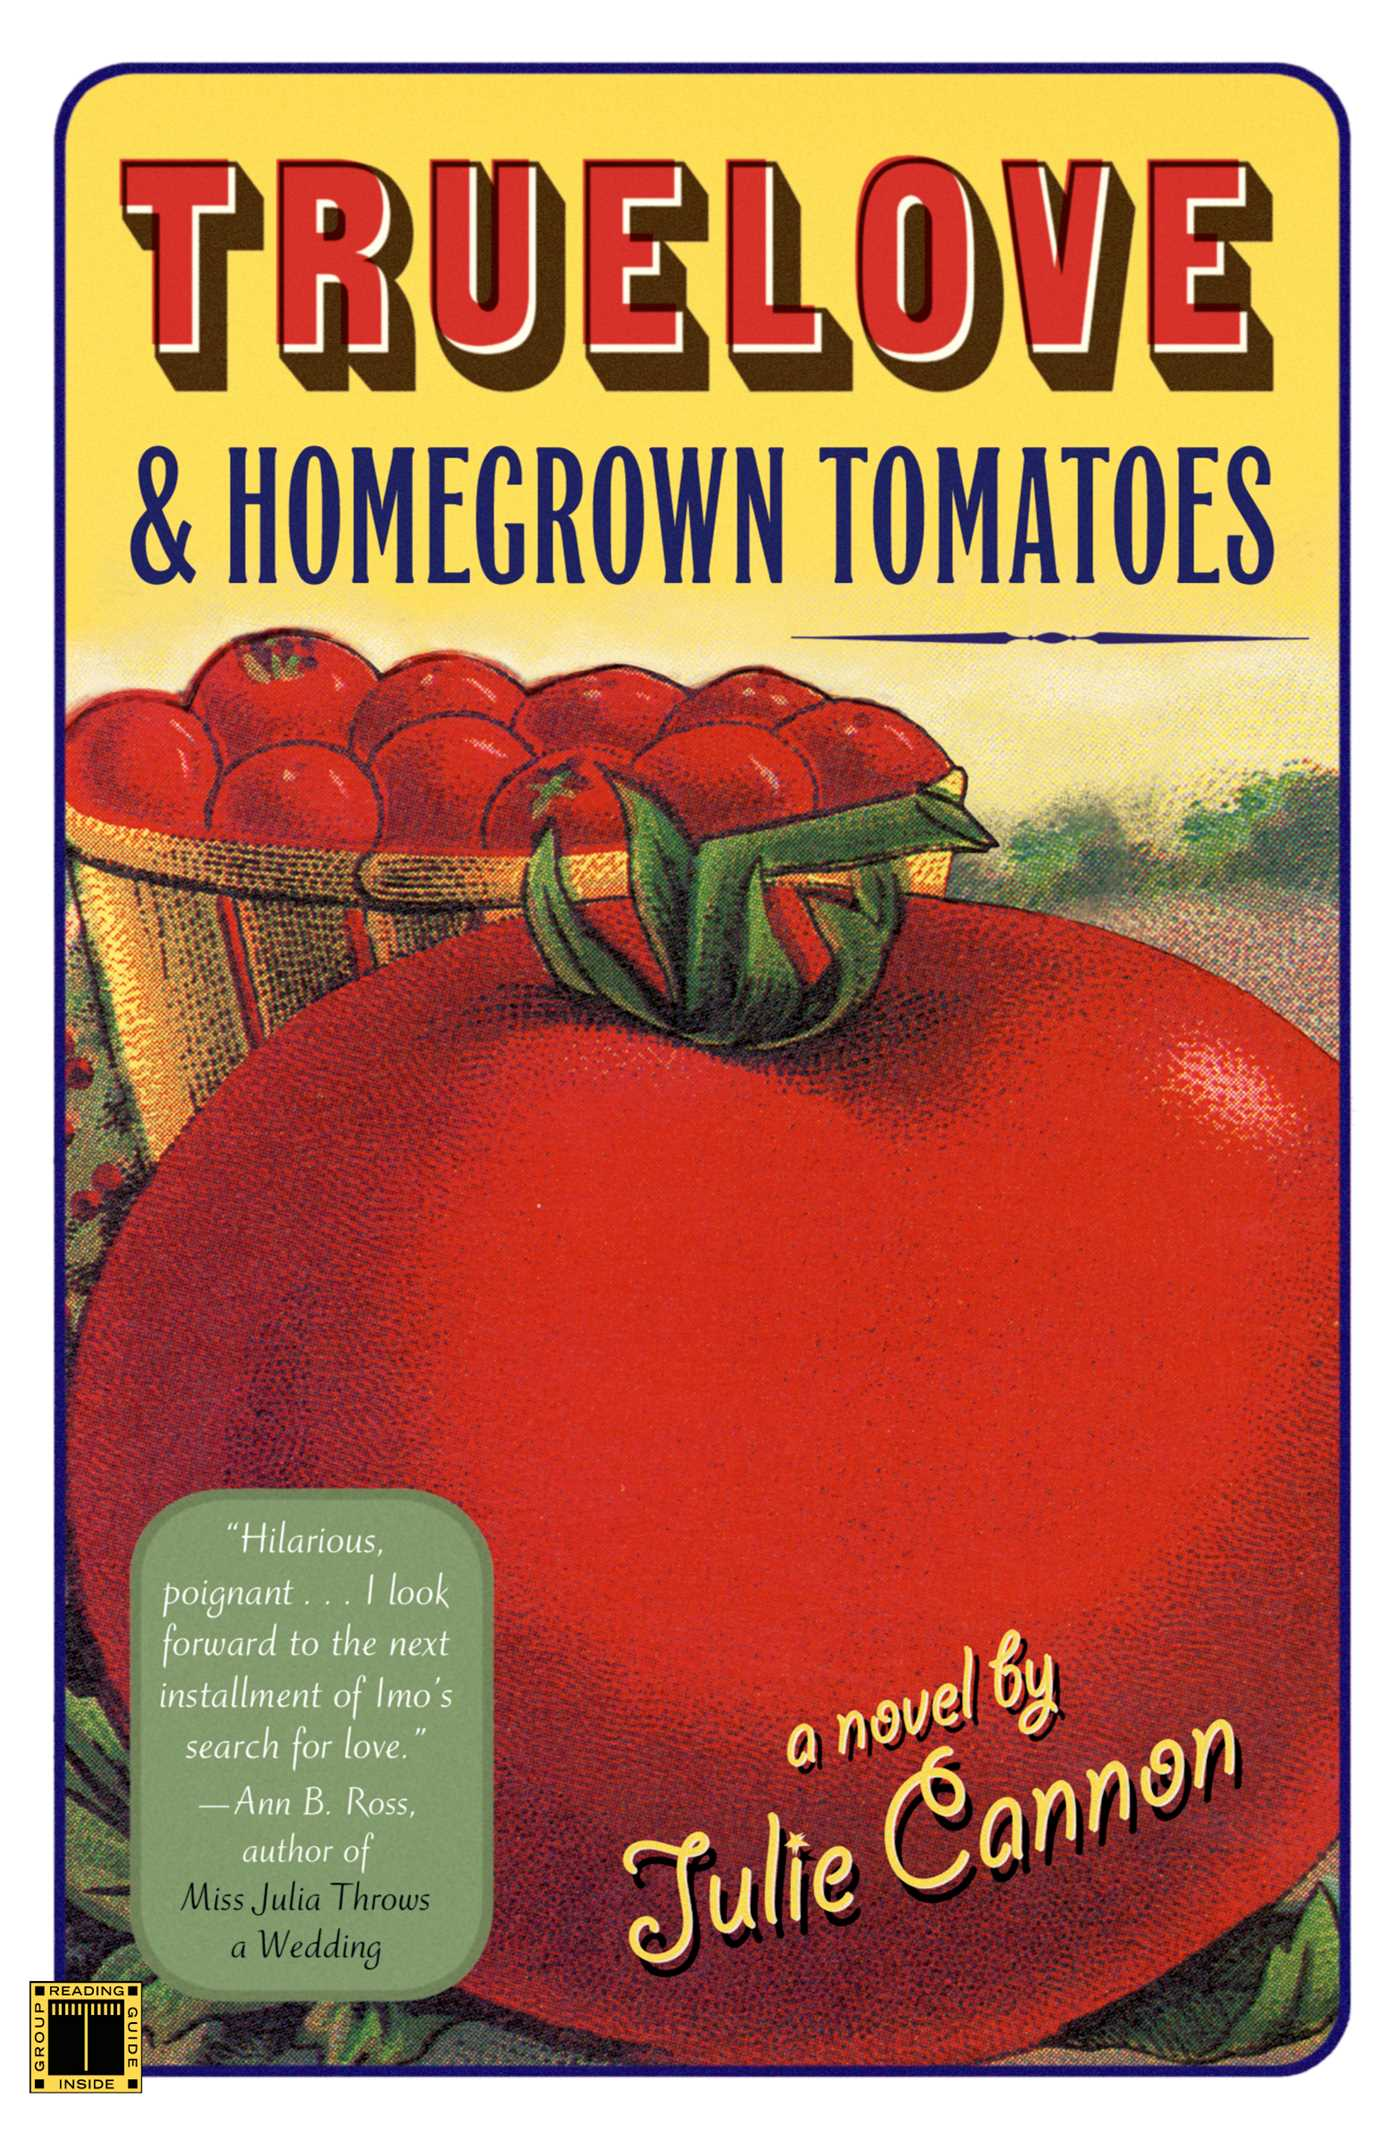 Truelove homegrown tomatoes 9781451603842 hr